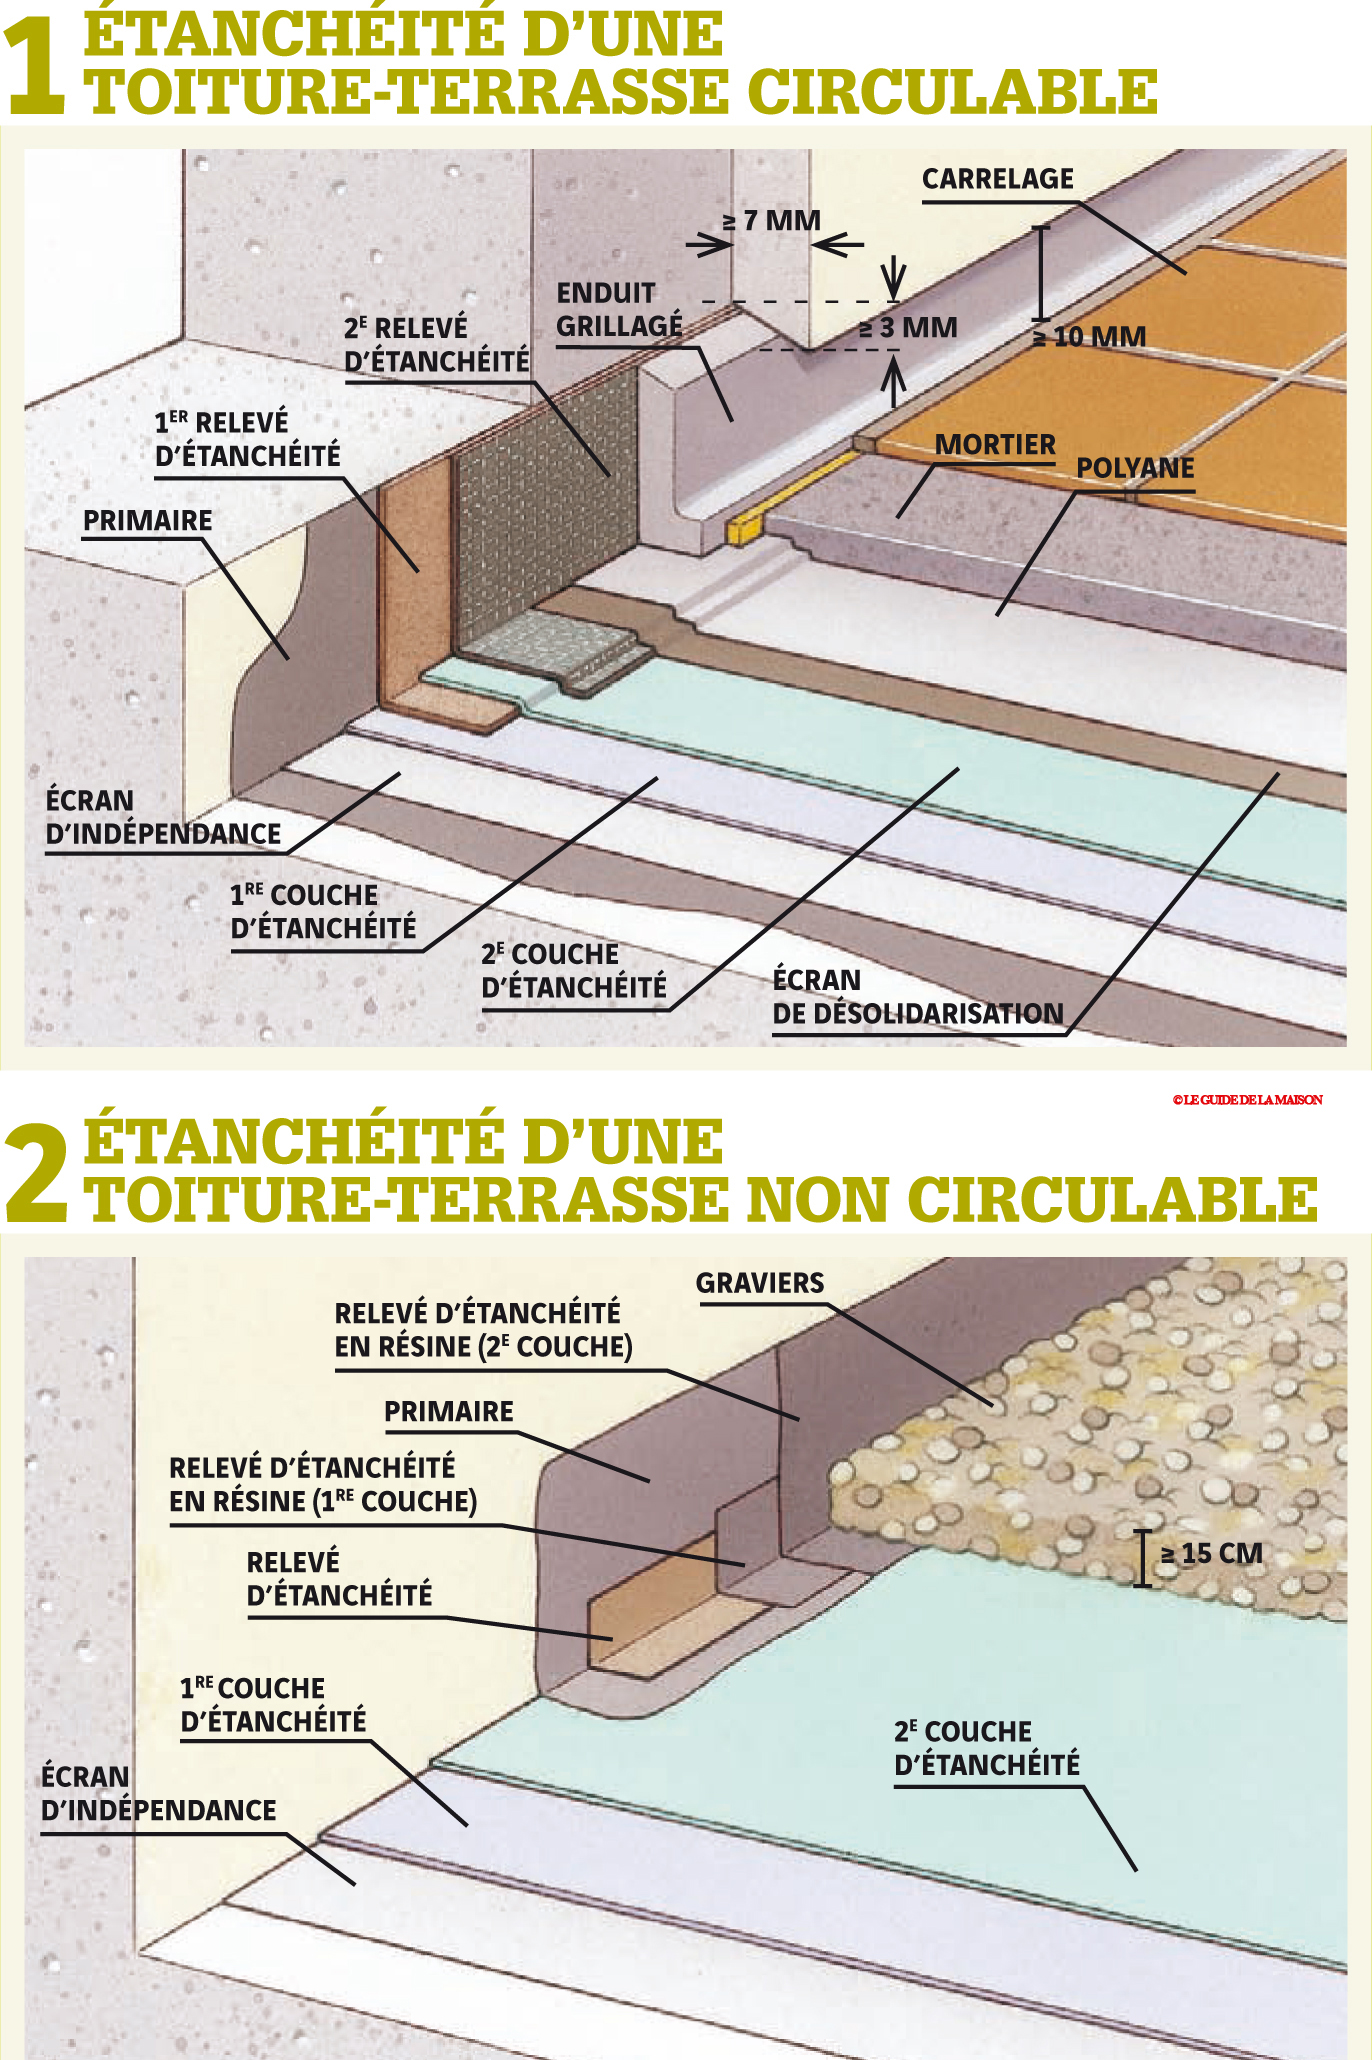 Fiche faire l 39 tanch it des toitures terrasses le guide de la maison - Etancheite terrasse accessible ...